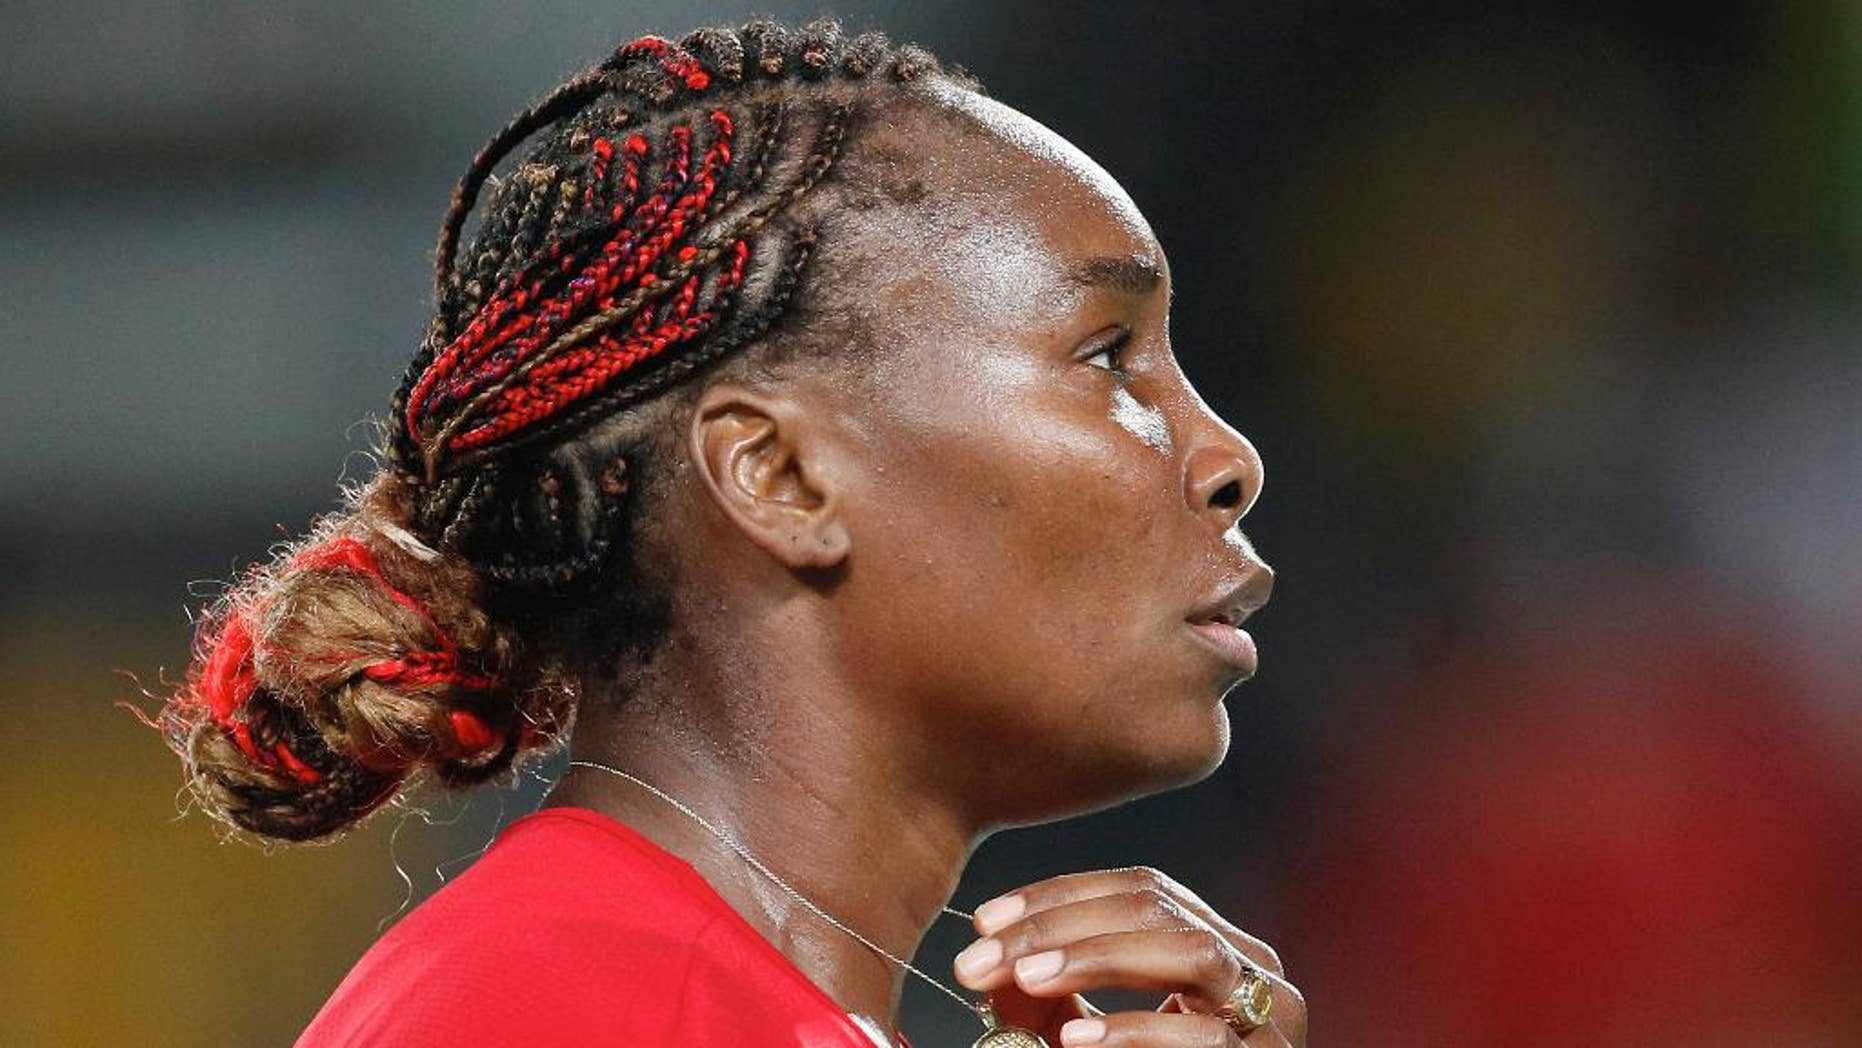 Venus Williams holds her medallion after losing a point to Belgium's Kirsten Flipkens in the women's tennis competition at the 2016 Summer Olympics in Rio de Janeiro, Brazil, Saturday, Aug. 6, 2016. (AP Photo/Vadim Ghirda)